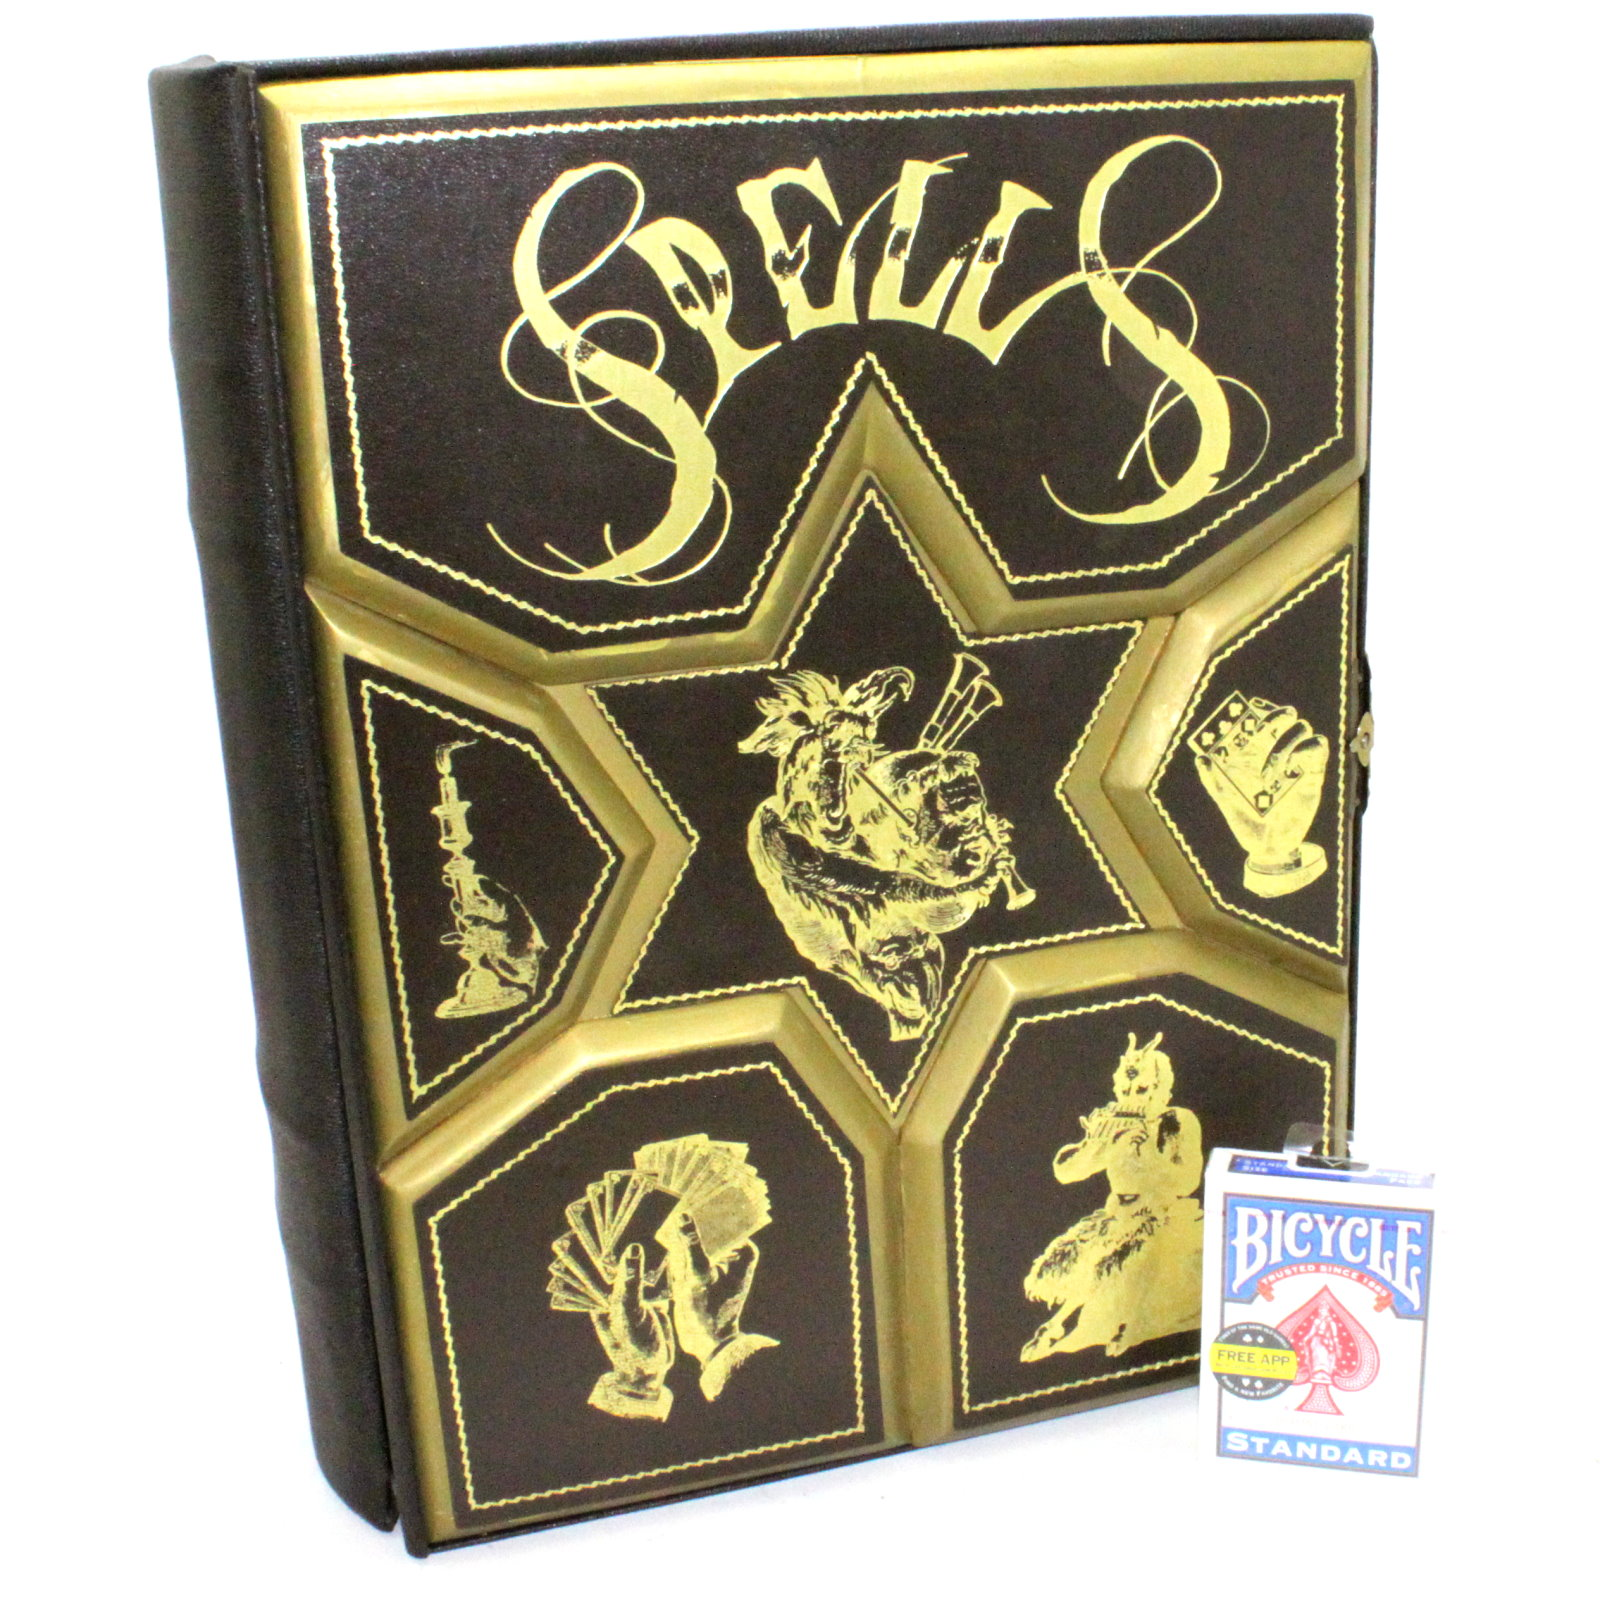 Book of Spells by Collectors Workshop